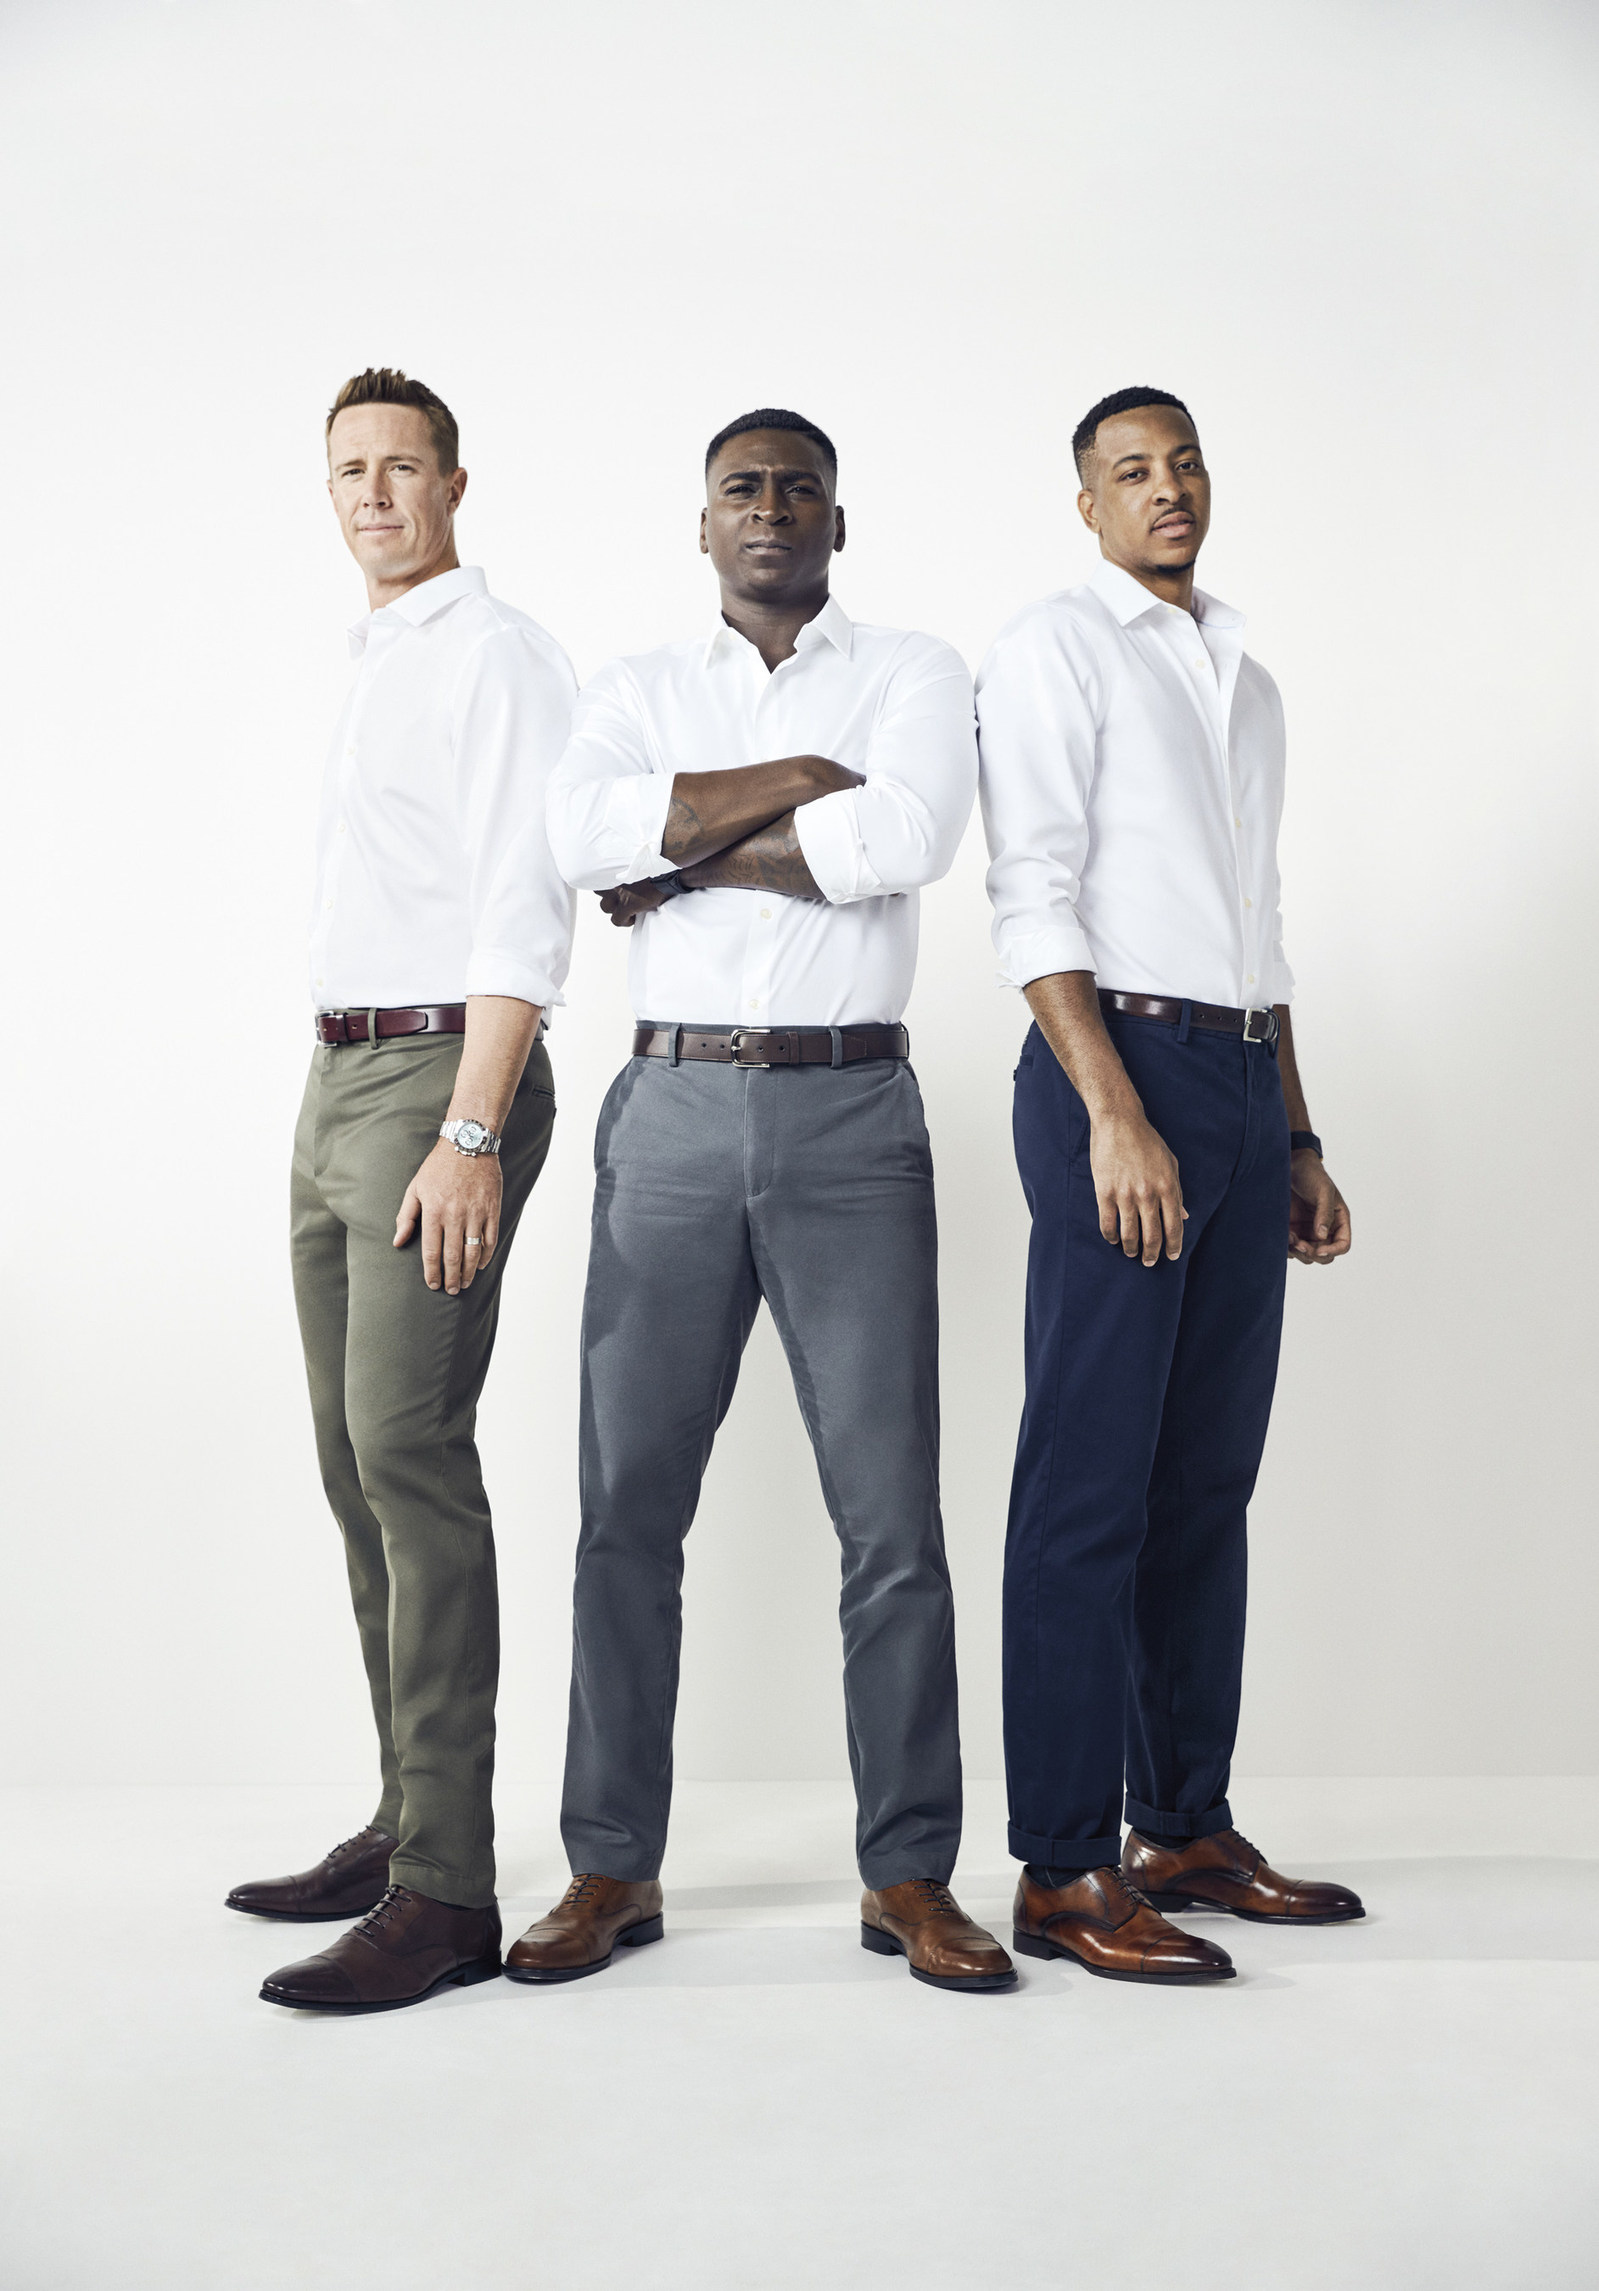 Banana Republic Men's Style Council debuts first ad campaign for Fall 2017 featuring the new Banana Republic Rapid Movement Chinos.